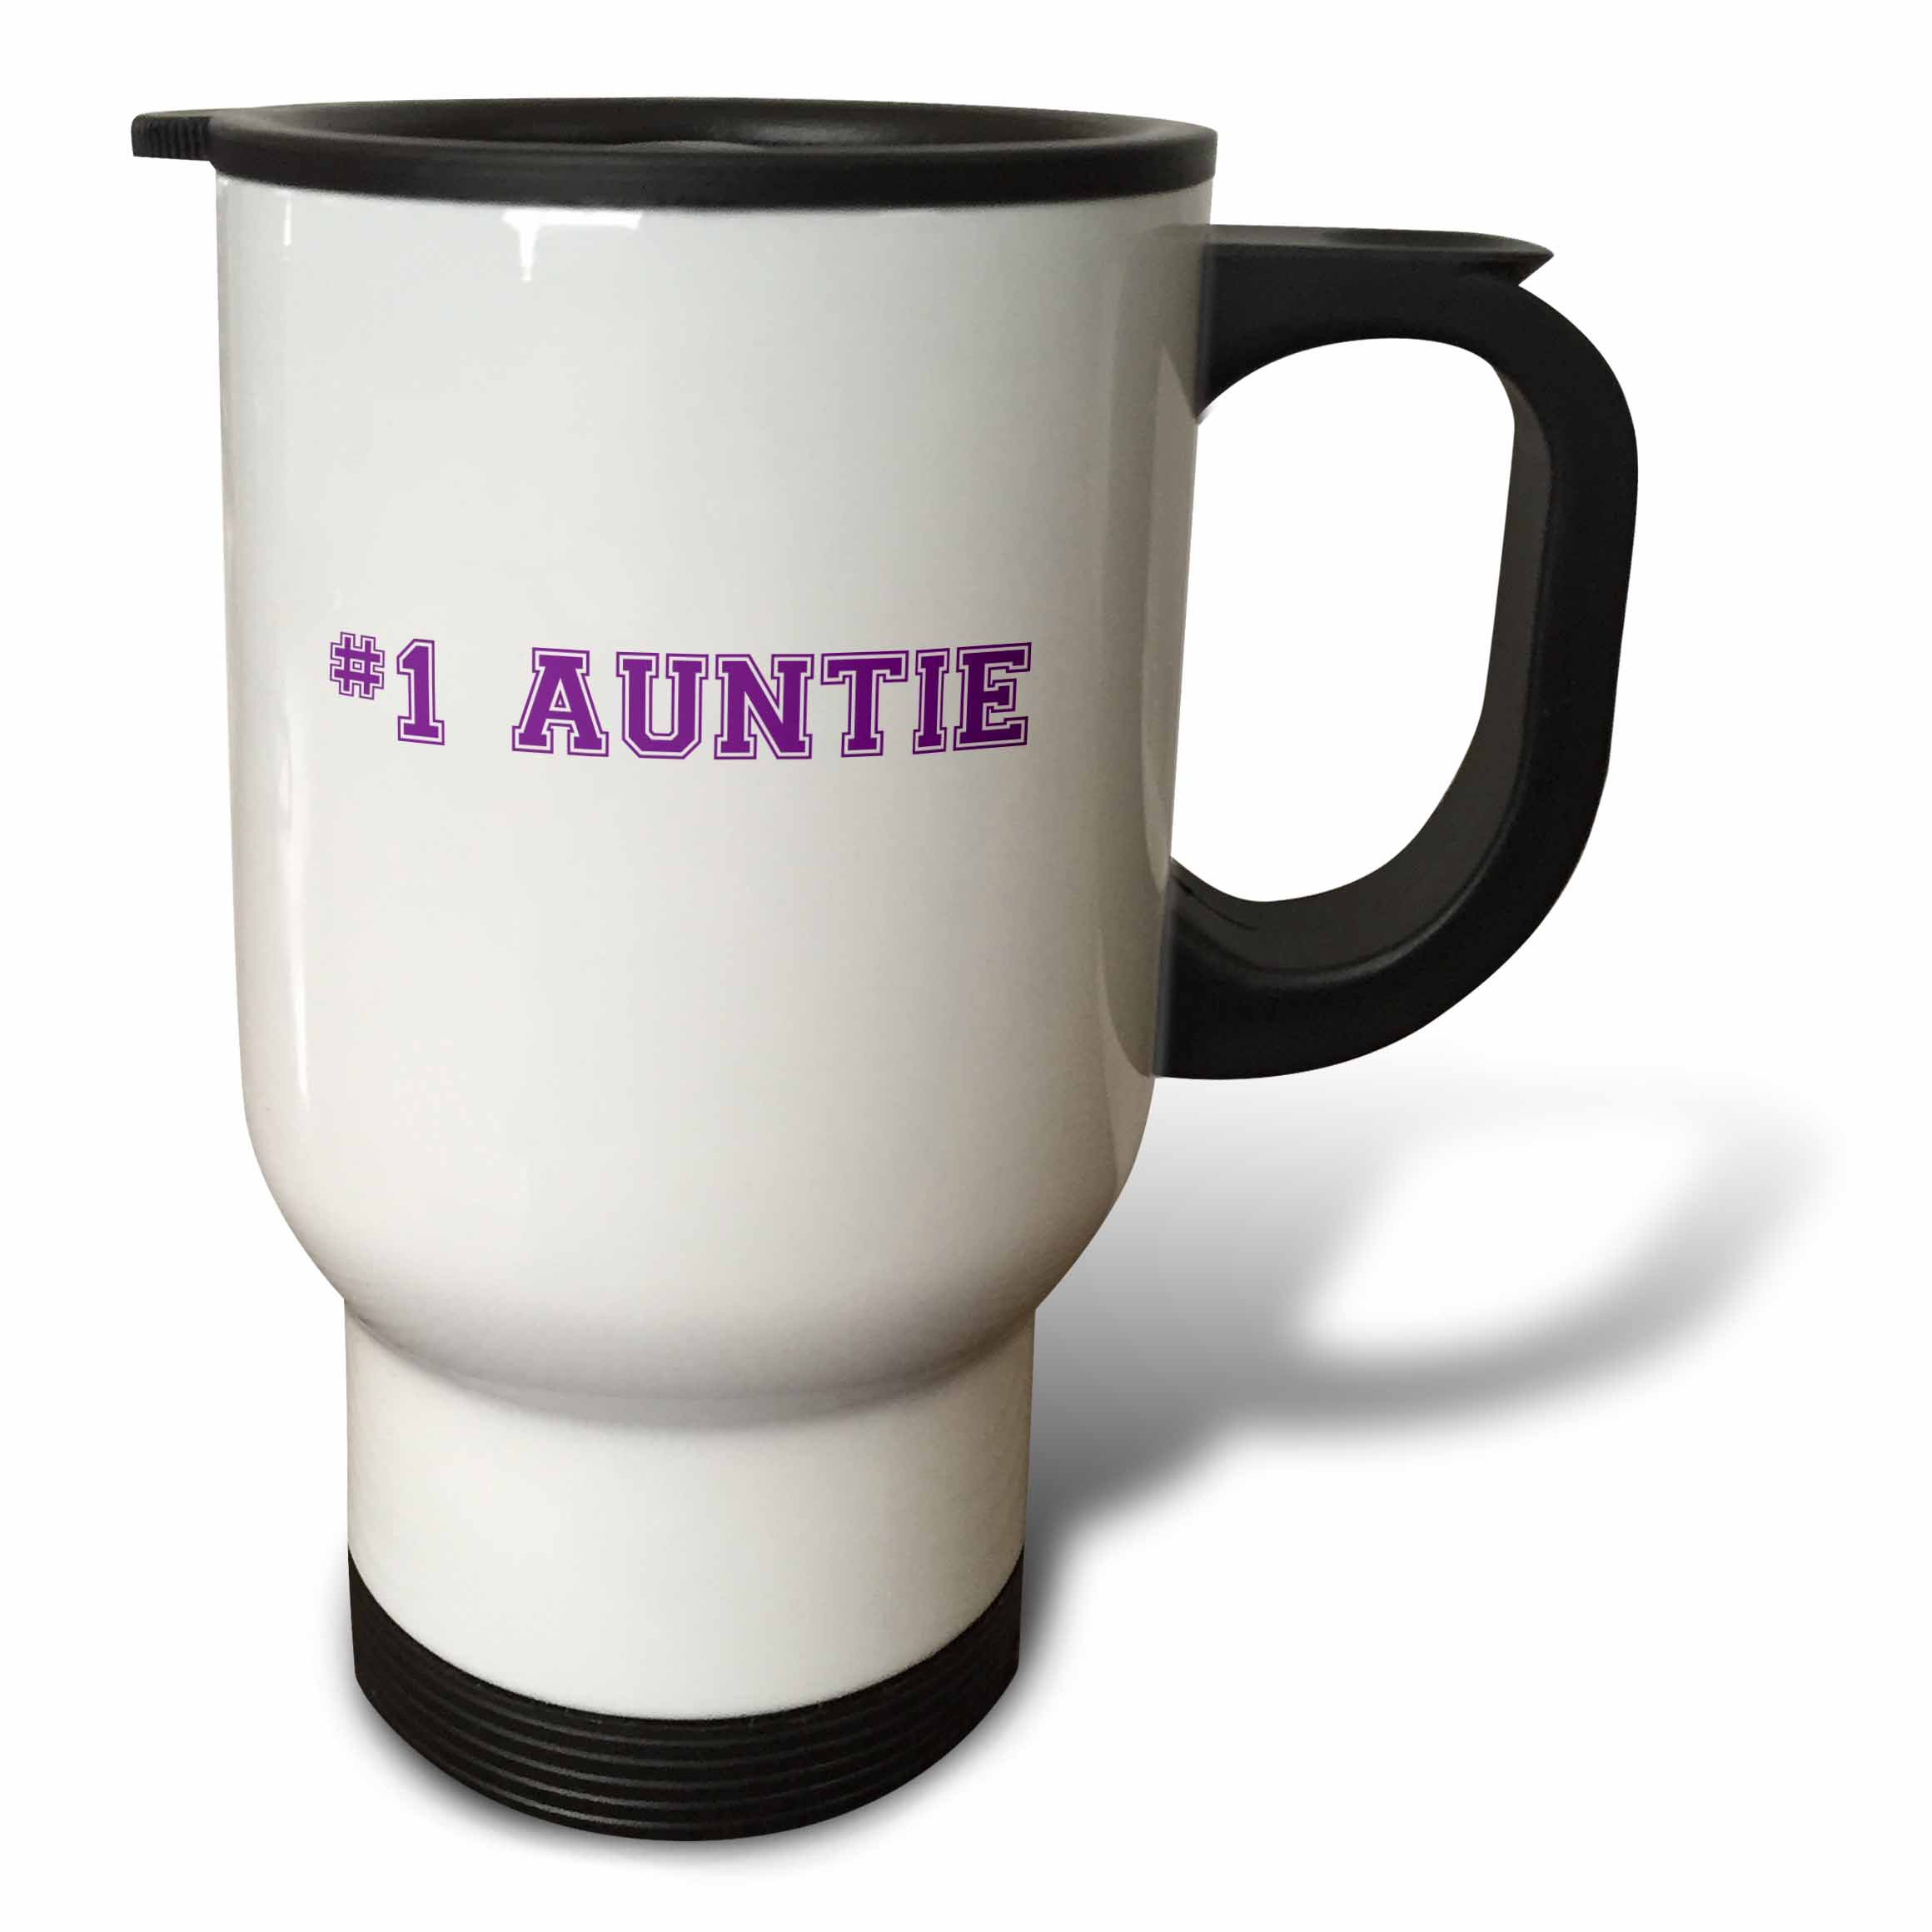 3dRose #1 Auntie - Number One Aunt - purple text - best honorary aunt - Family and Relatives gifts, Travel Mug, 14oz, Stainless Steel